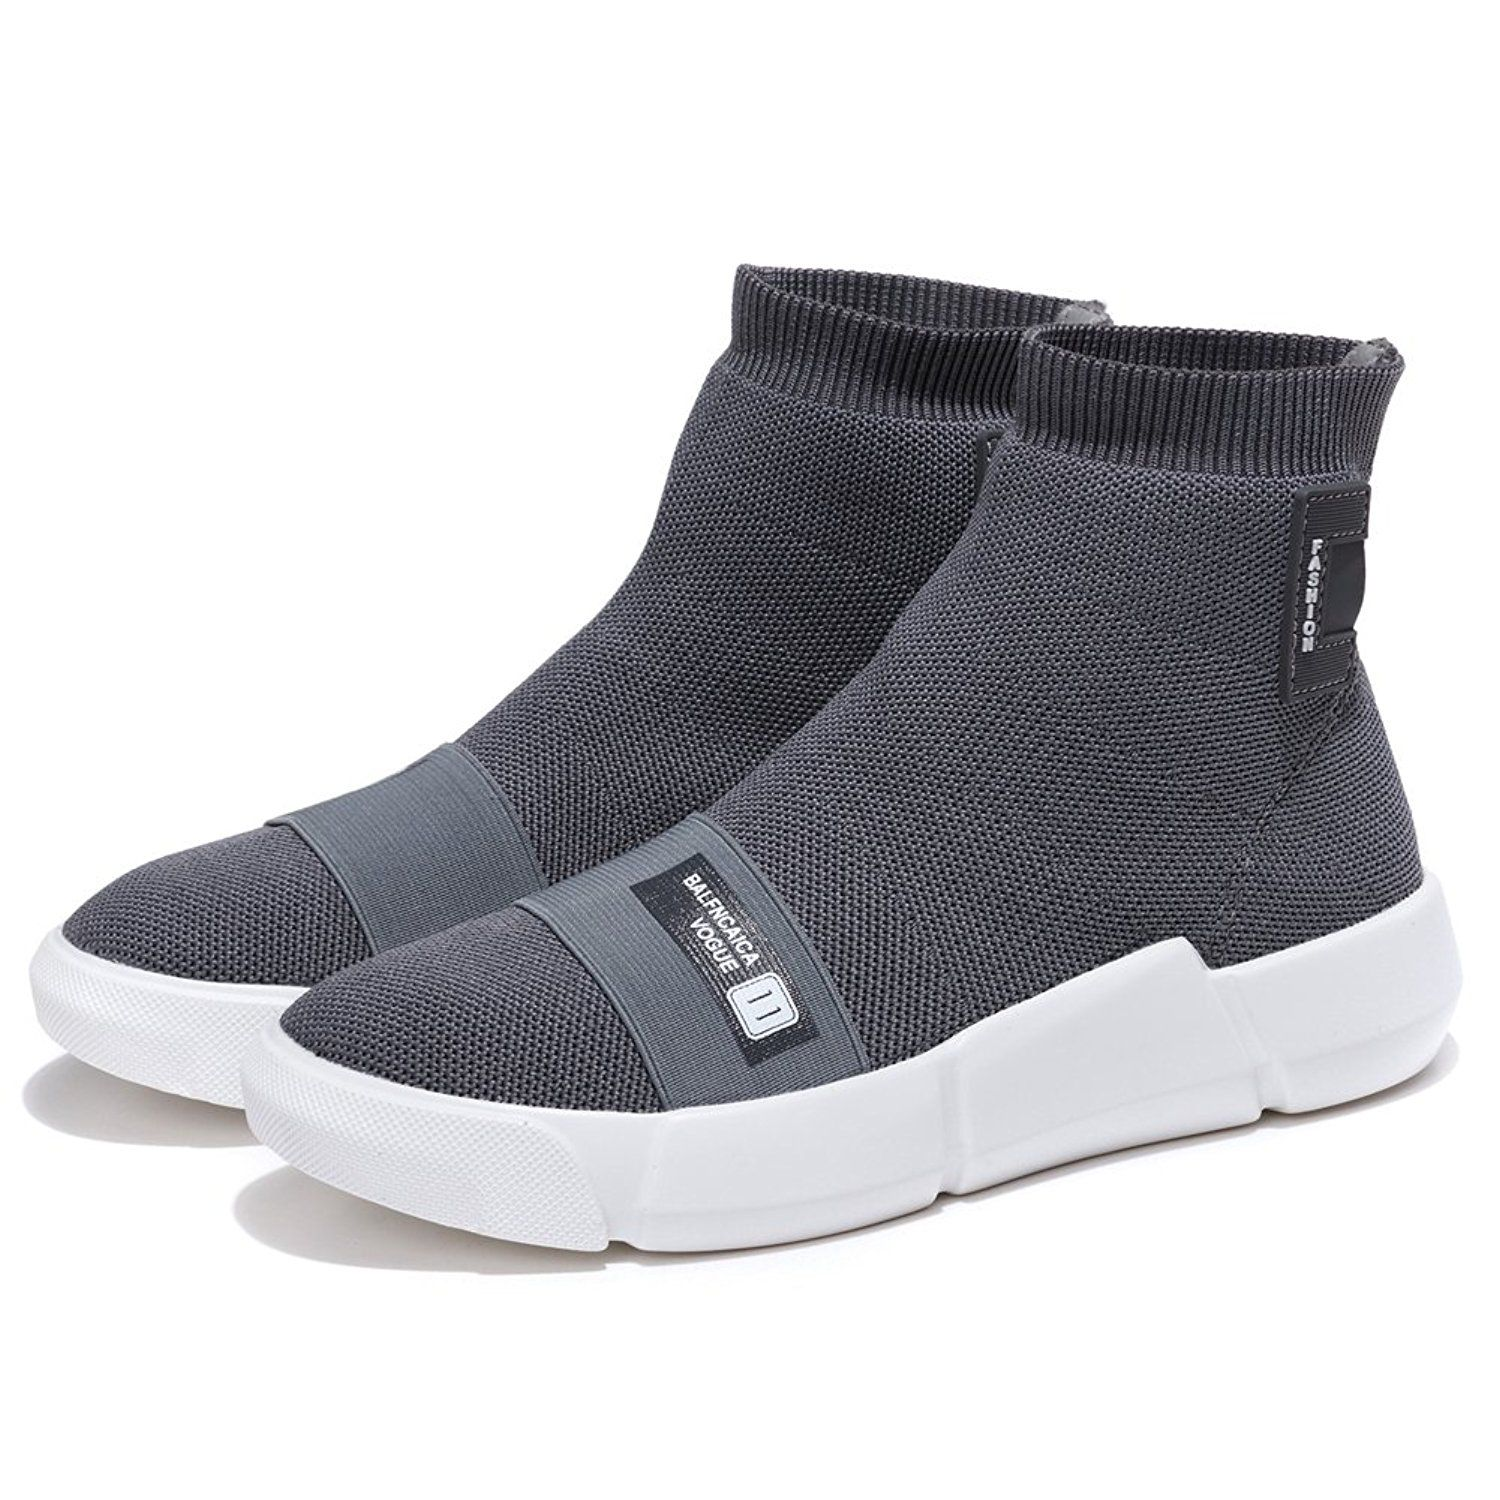 52dcee7508eb0 KONHILL Women s Breathable High - Top Walking Casual Athletic Sneaker Ankle  Boots Socks Shoes leathershoes  leather  shoesformen  leathershoesformen ...